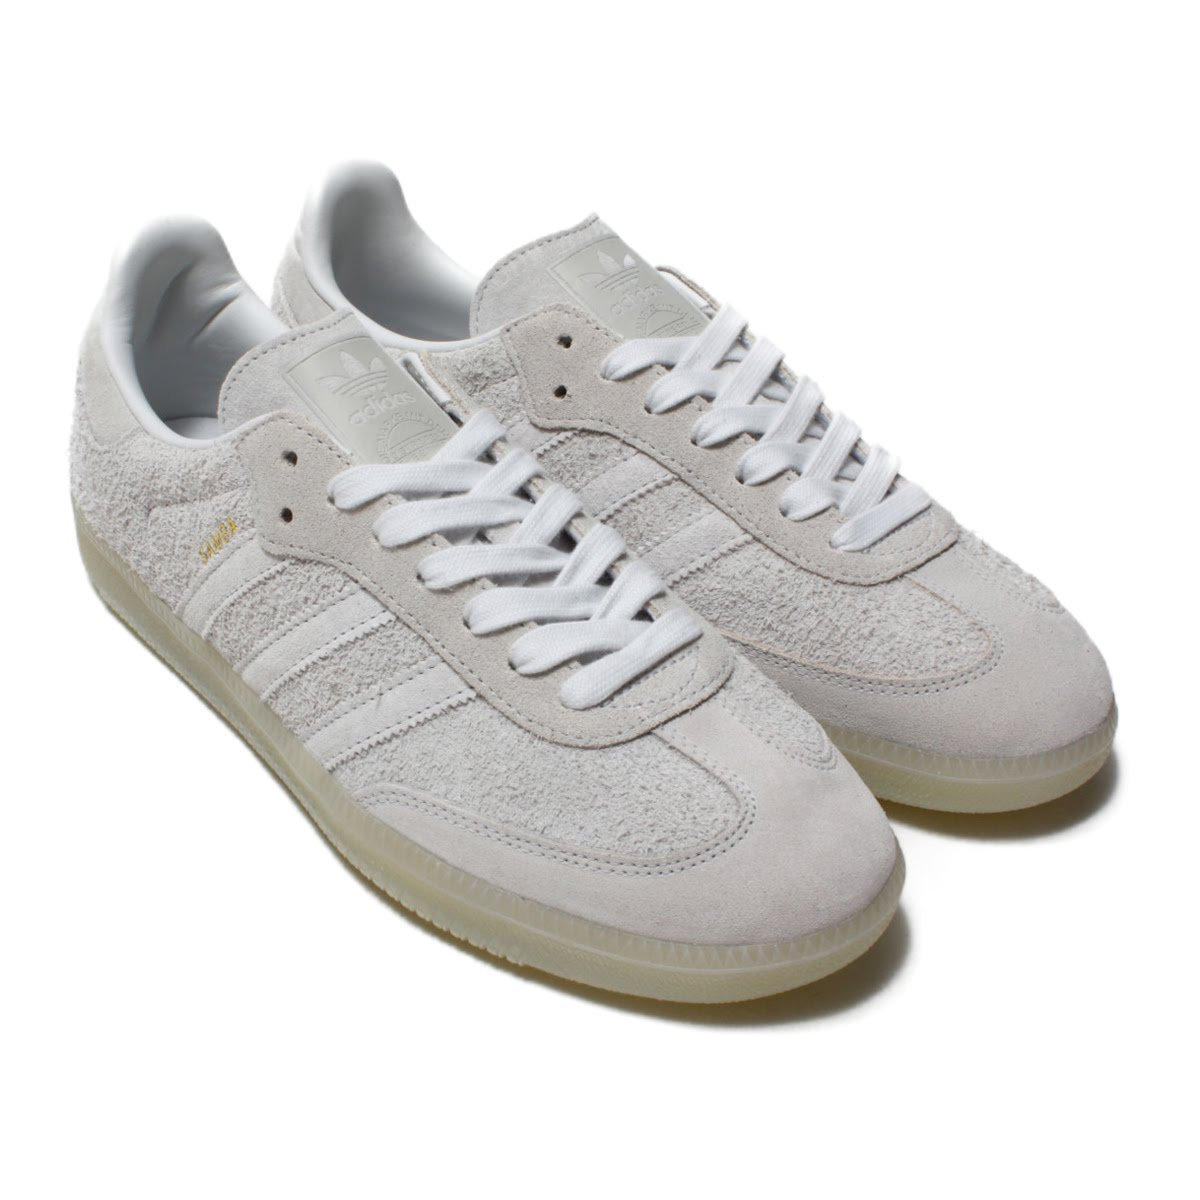 8af84a62a I make my debut as soccer shoes and